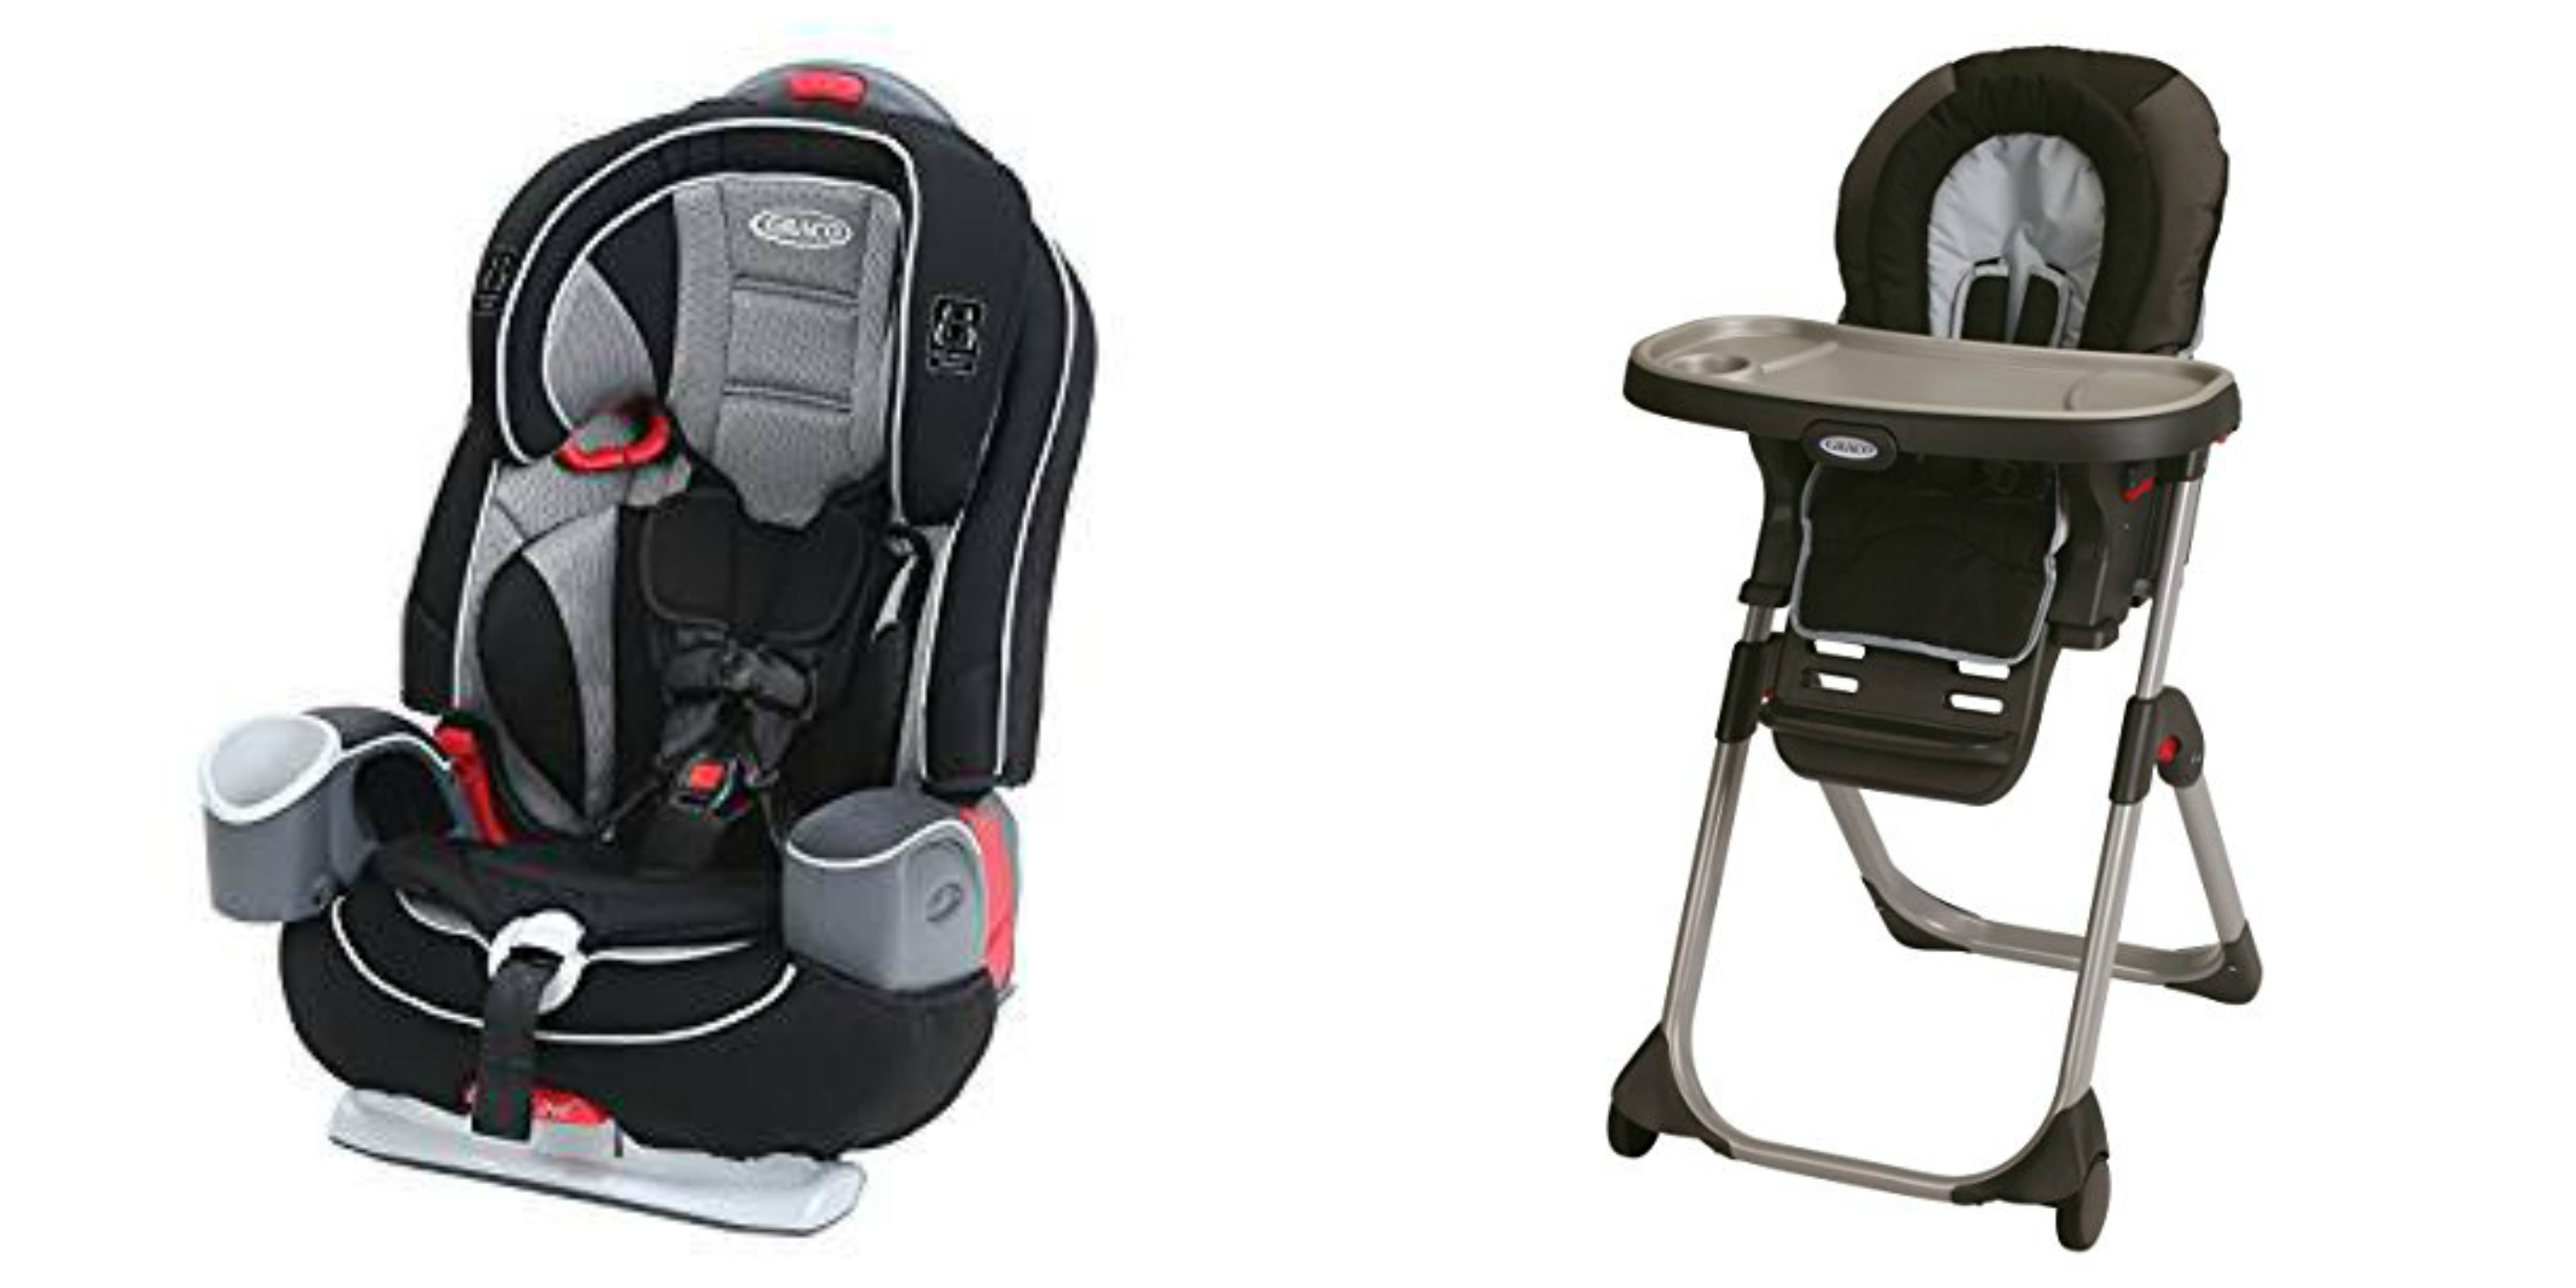 Amazon: Save Big On Select Graco Car Seats, Strollers and Gear ...